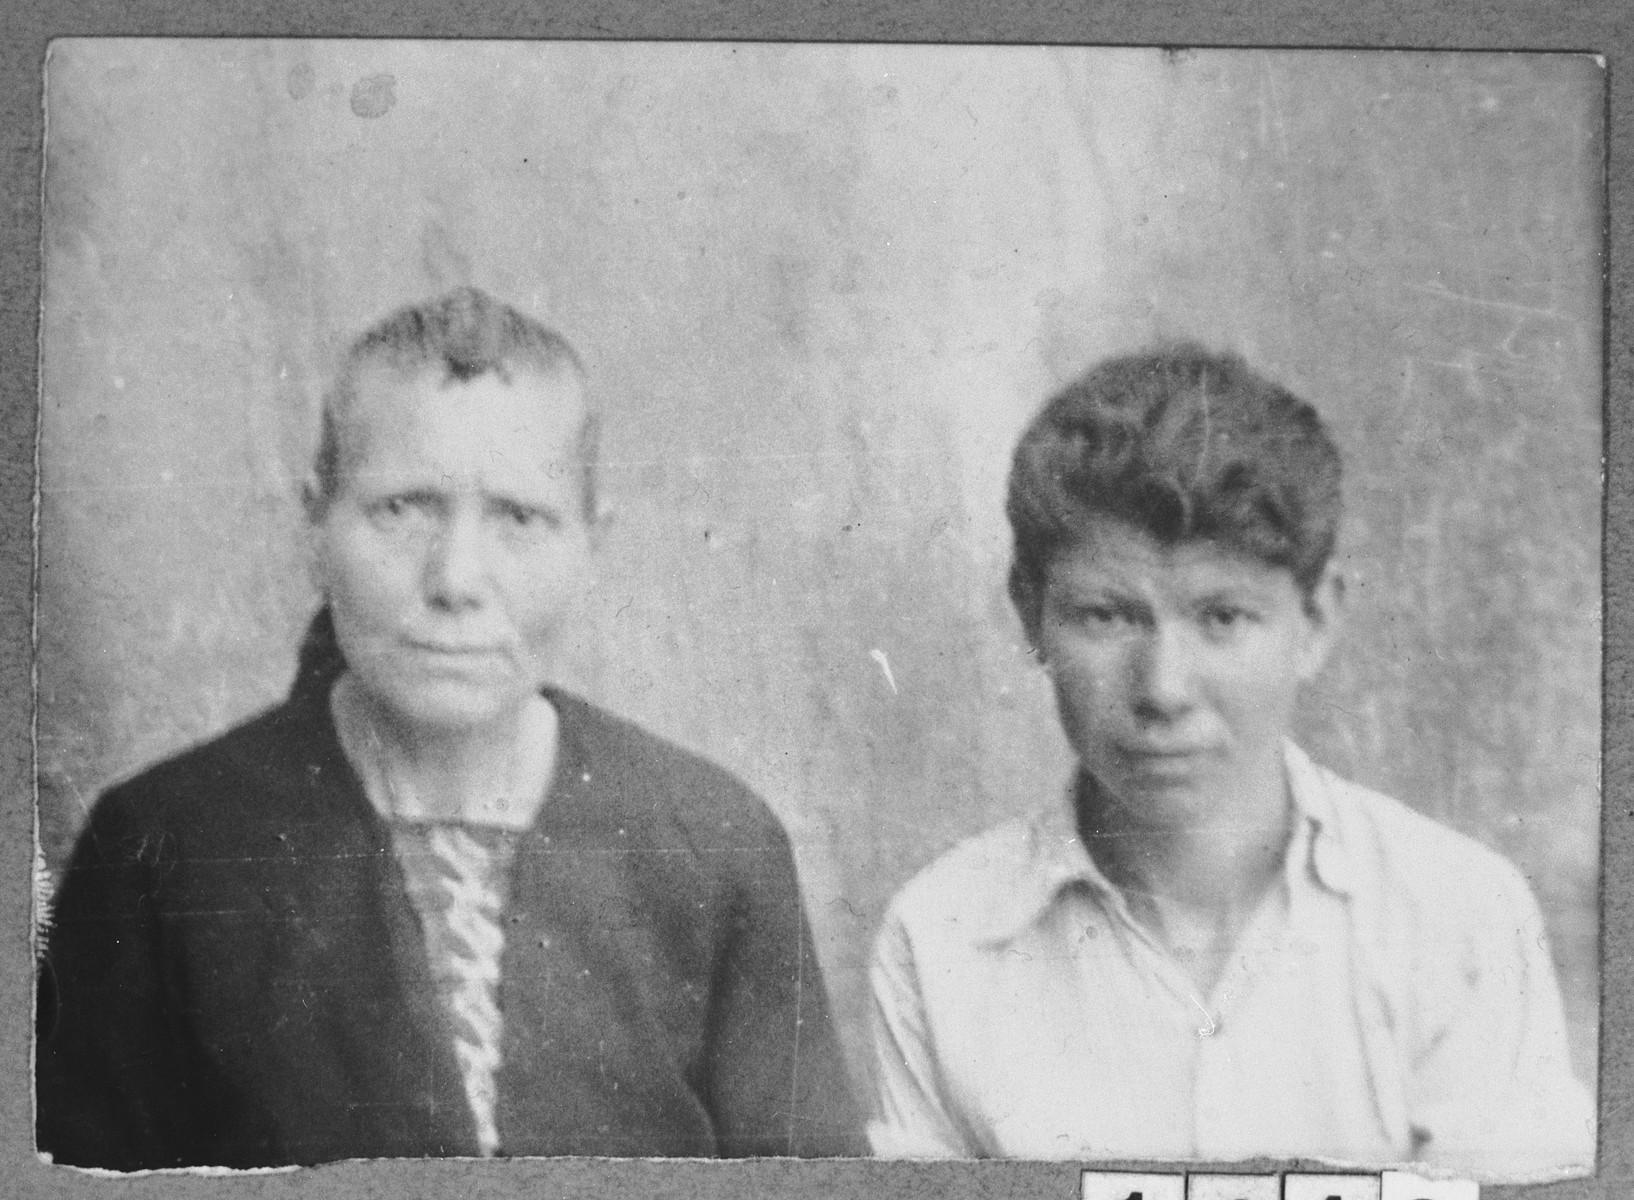 Portrait of Ester (B.) Hasson, and Leon (B.) Hasson.  Ester was a laundress and Leon, a student.  They lived at Avliya 1 in Bitola.